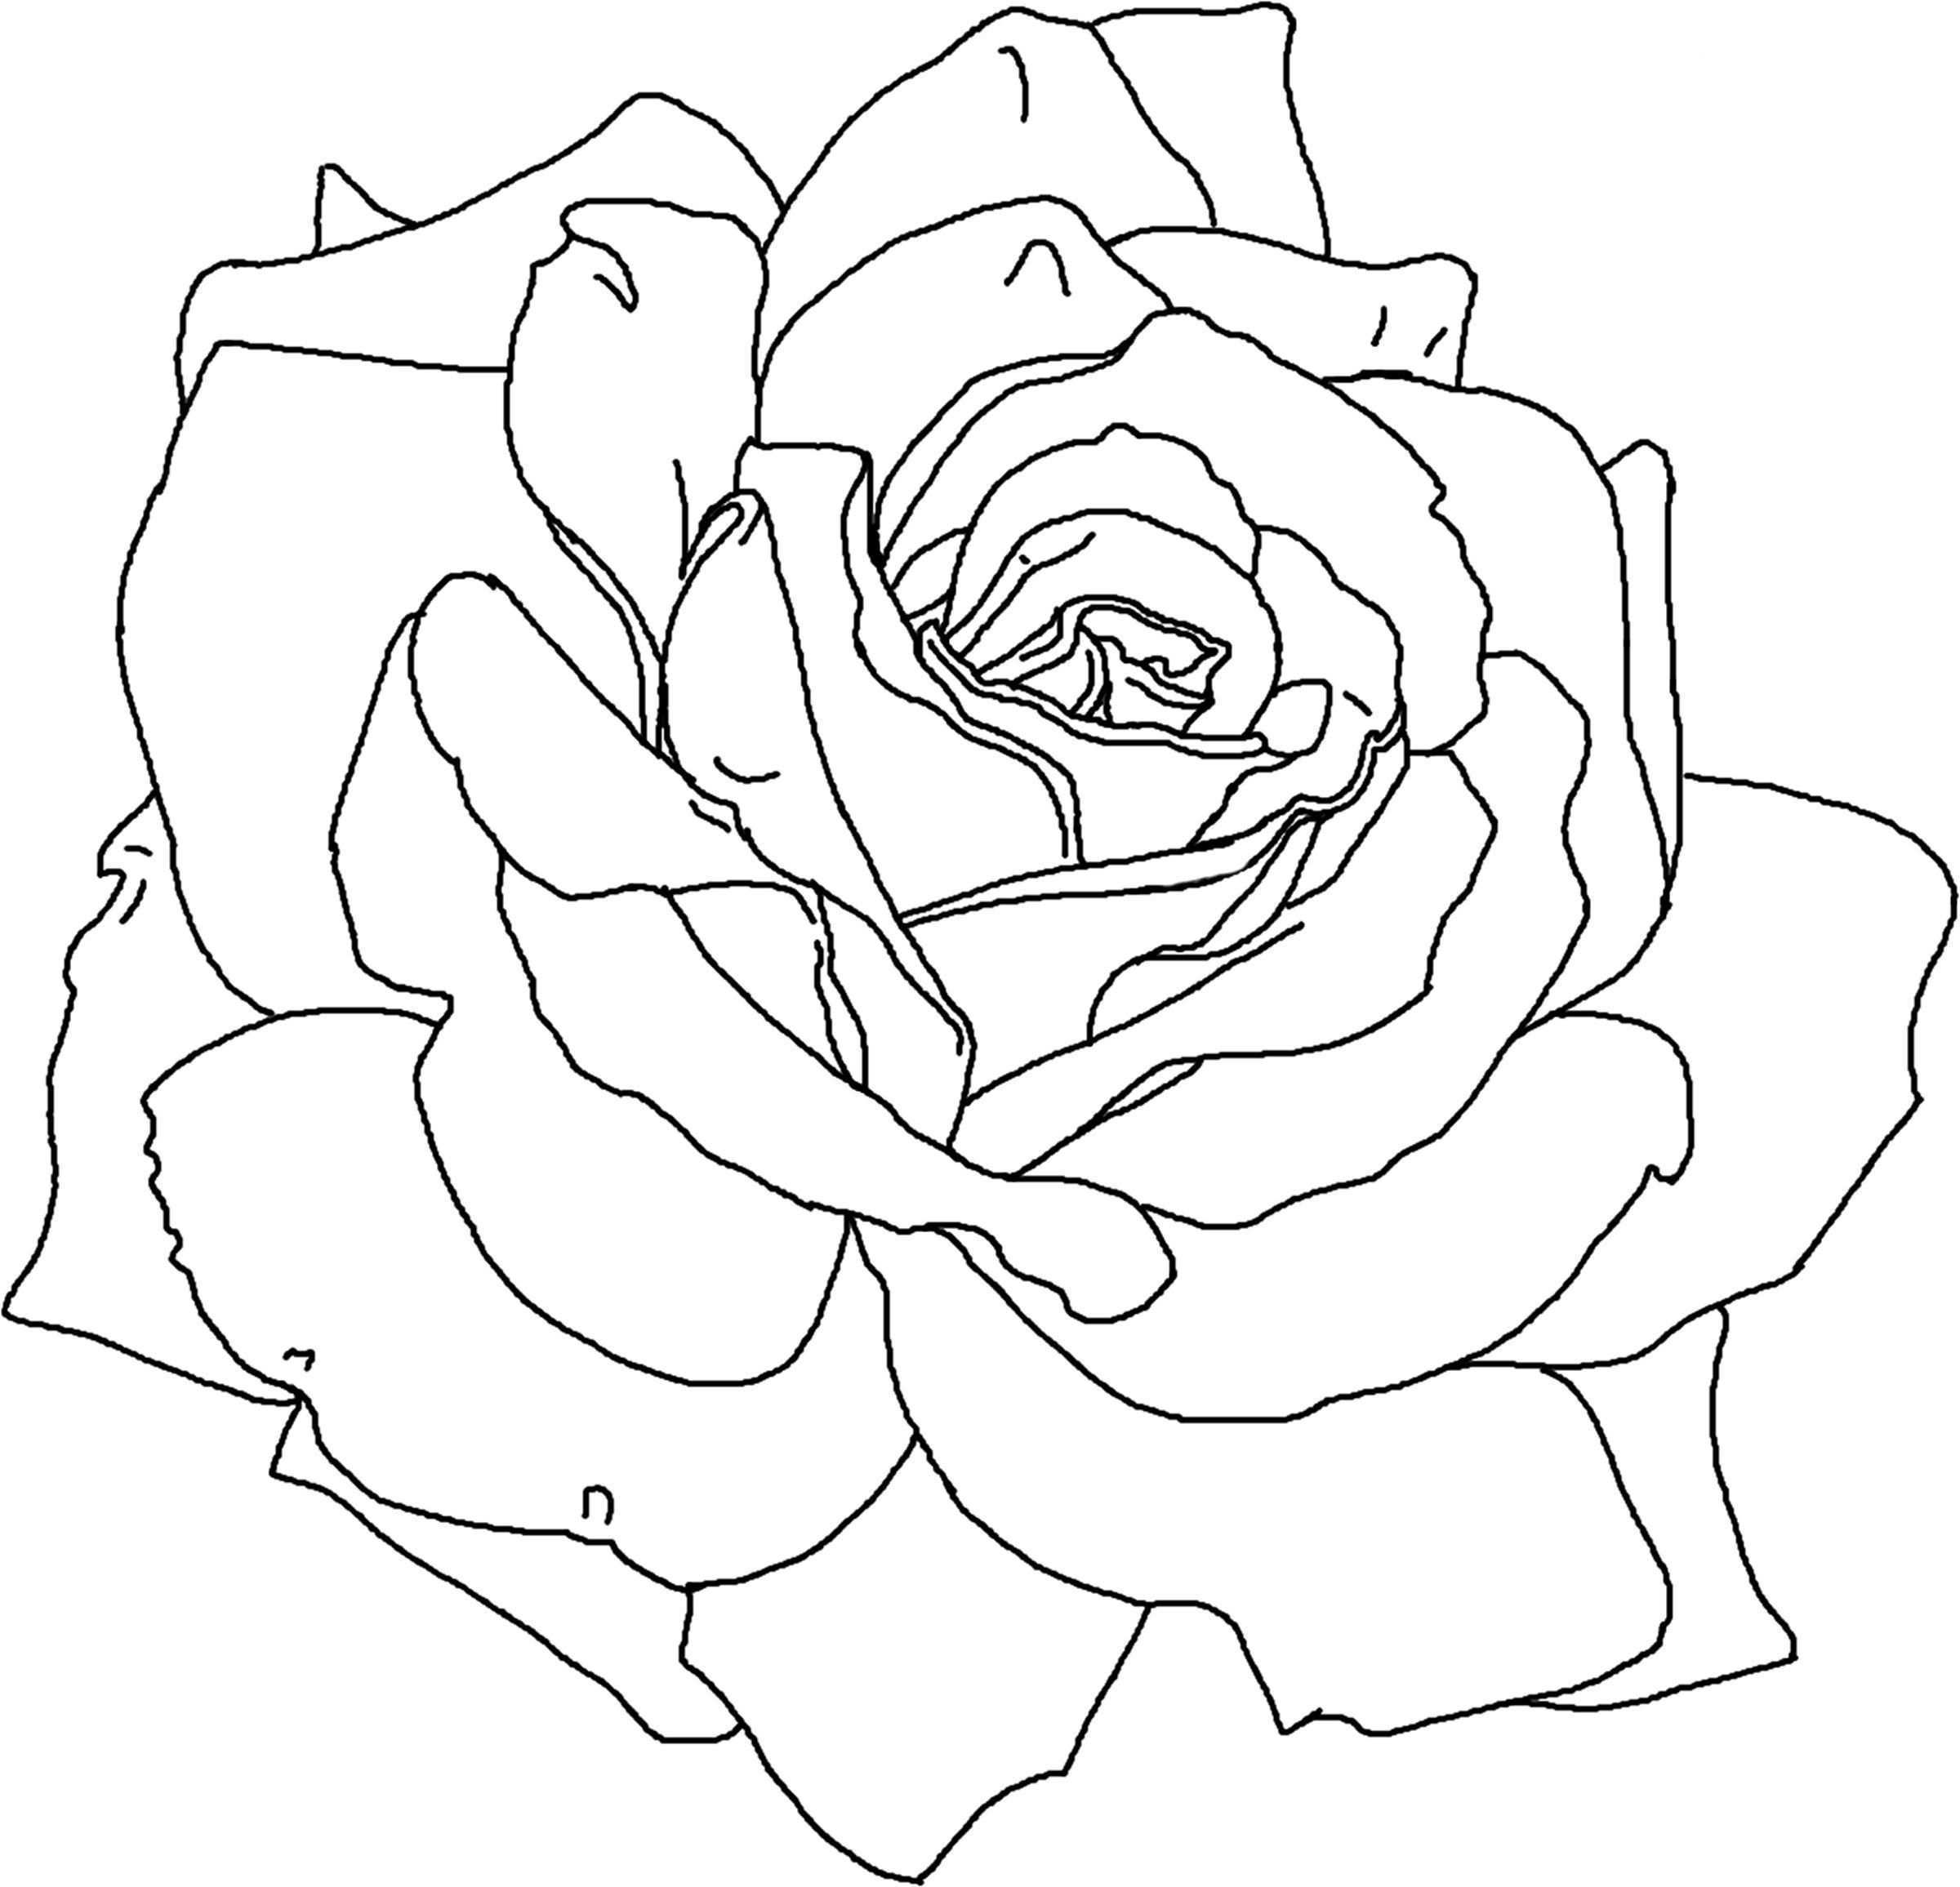 Rose Flower Coloring Page Printable Flower Coloring Pages Rose Coloring Pages Flower Coloring Pages